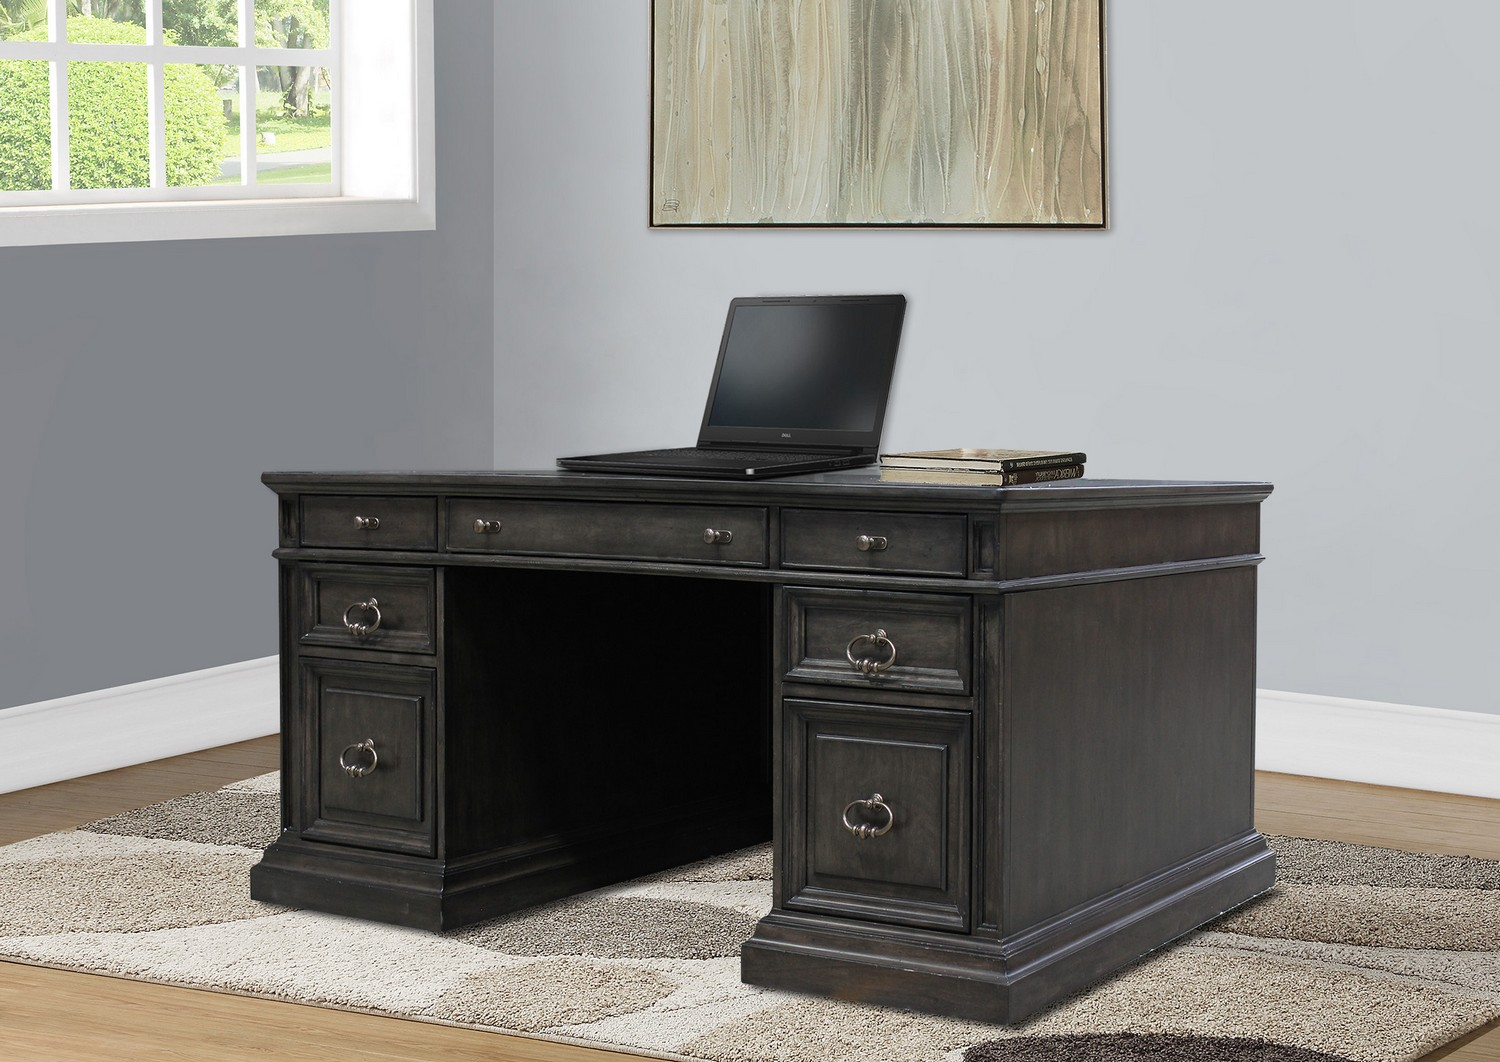 Parker House Washington Heights Double Pedestal Executive Desk